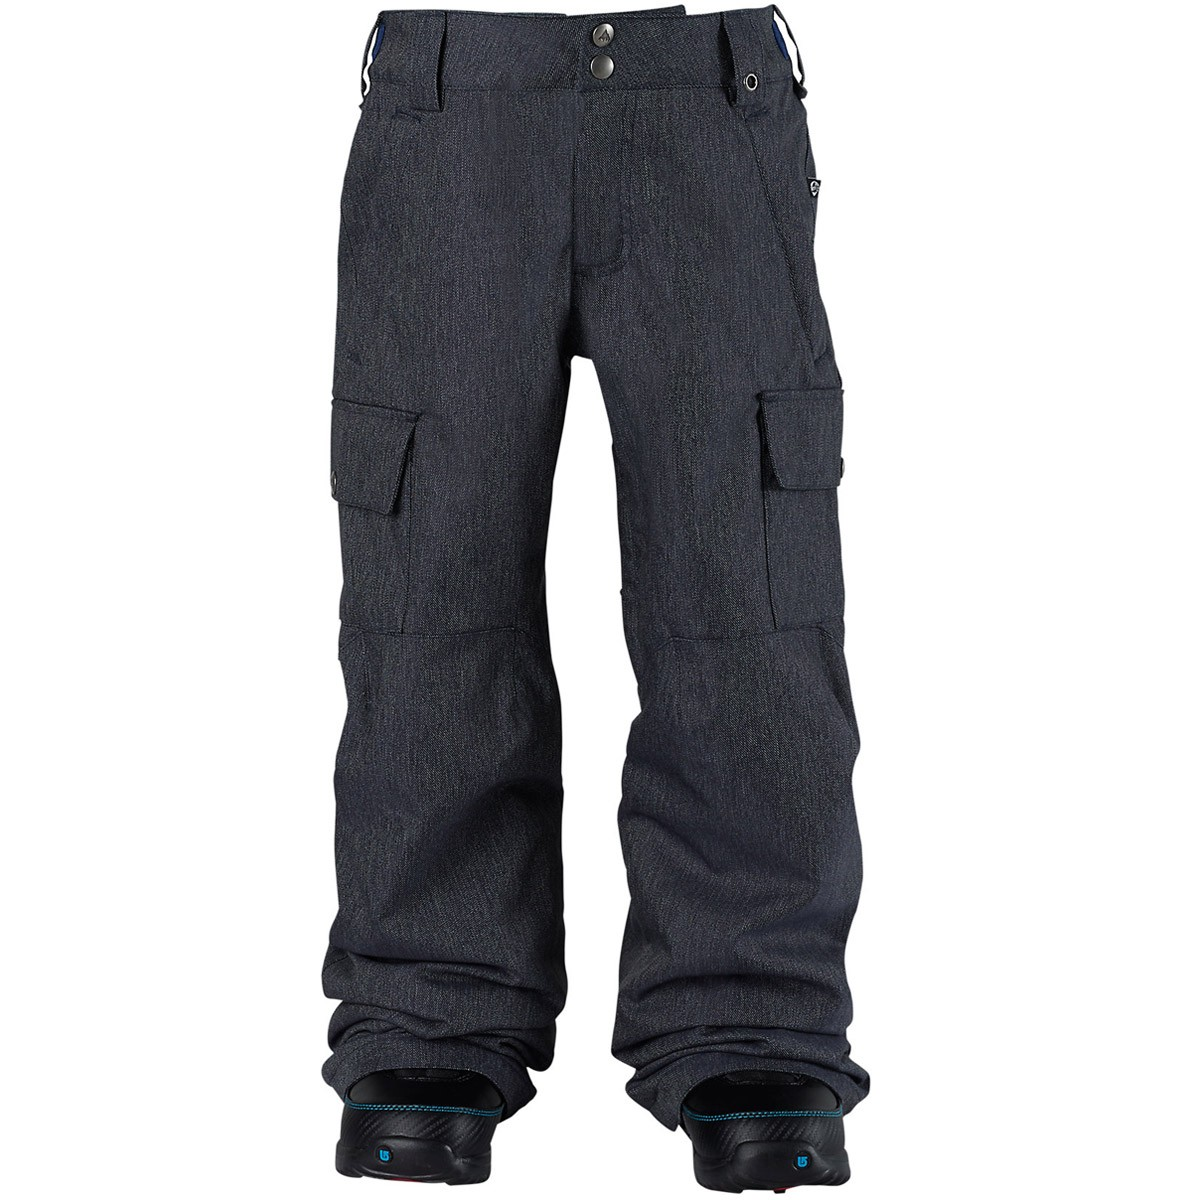 Kids Snowboard Pants in stock and ready to ship out blazing fast from The House Boardshop. Boys and Girls Snowboard Pants from the top companies in the world at the best selection and prices. We carry high performance, durable snowboard gear for young riders at .